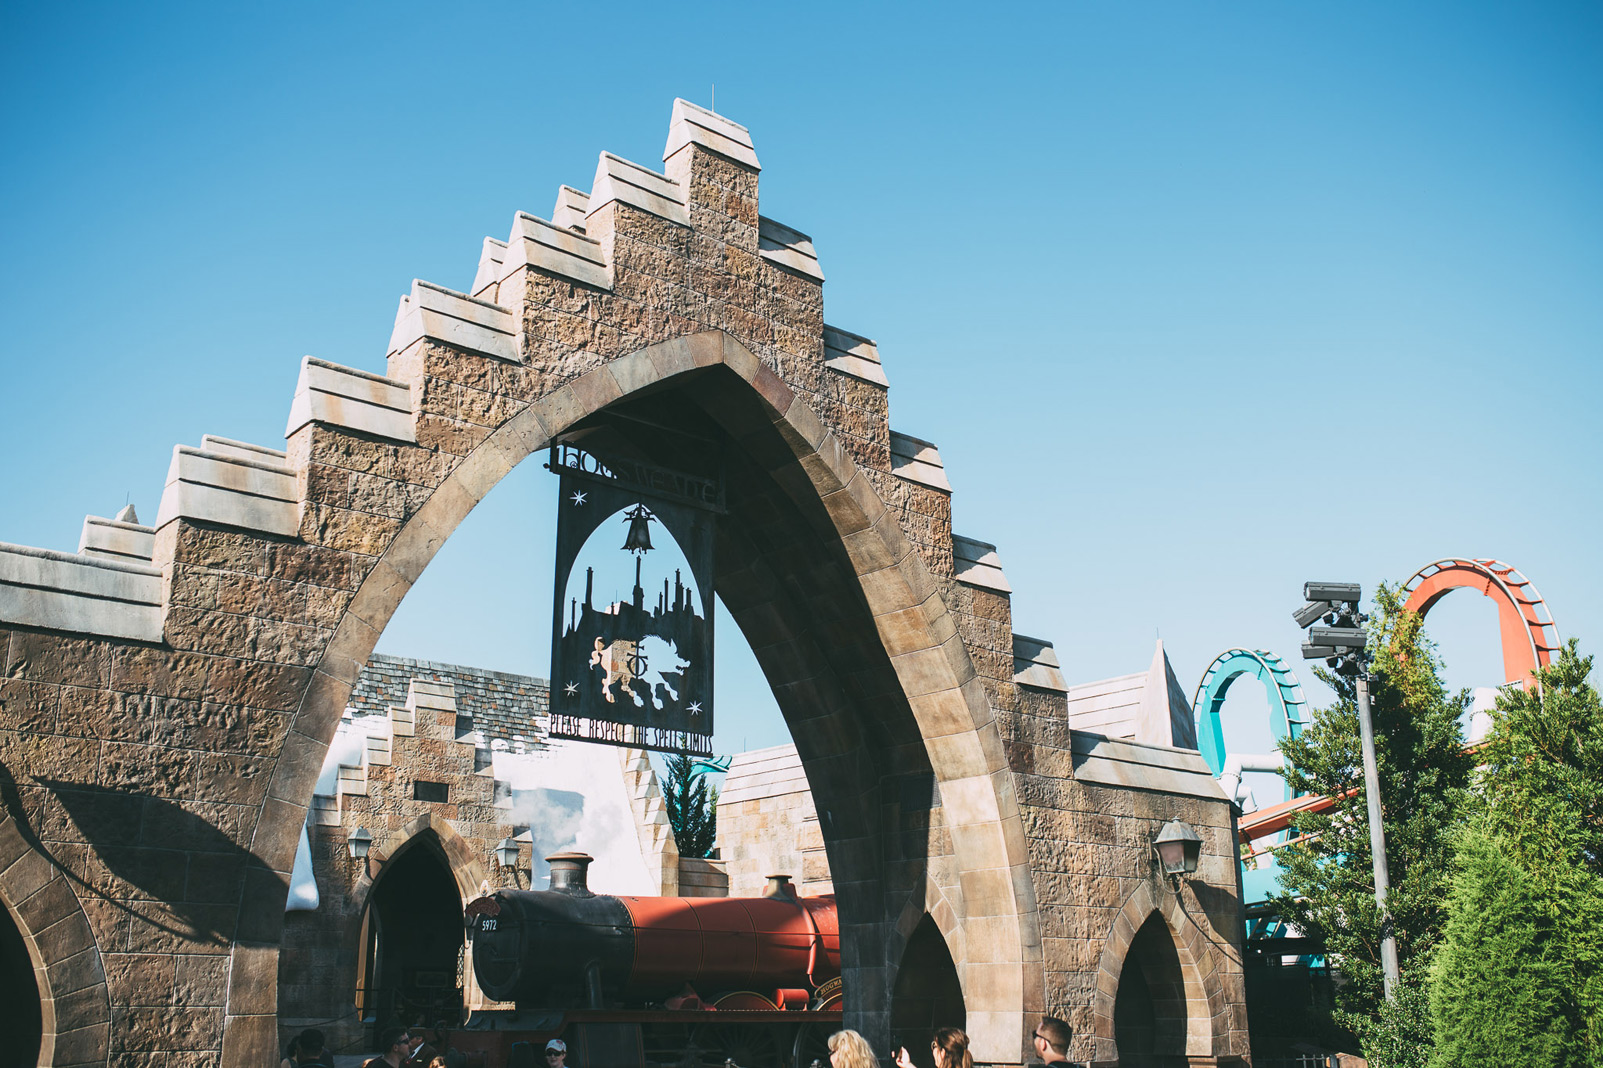 entrance to hogsmeade from the inside